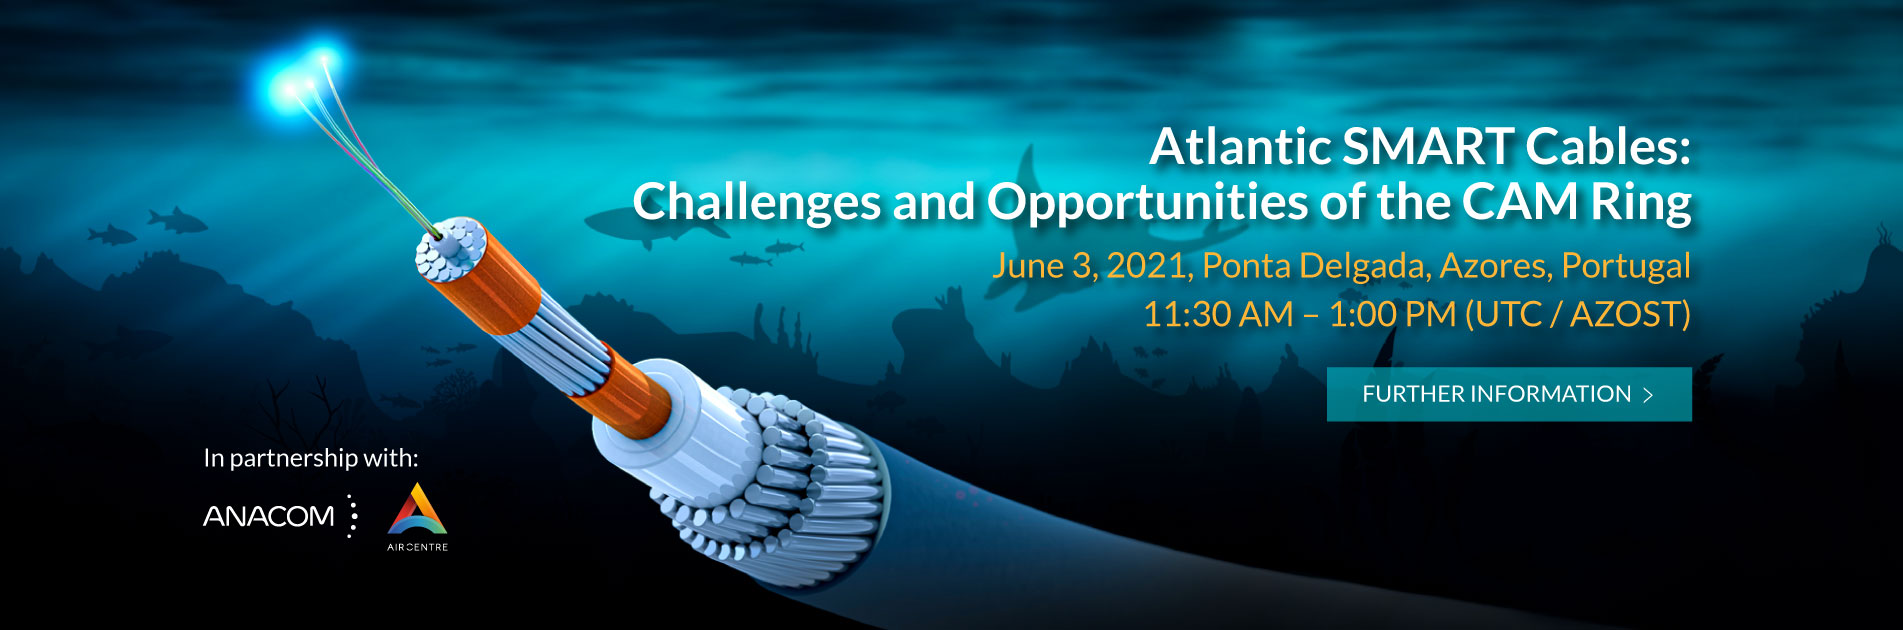 Atlantic Smart Cables: Challenges and Opportunities of the CAM Ring